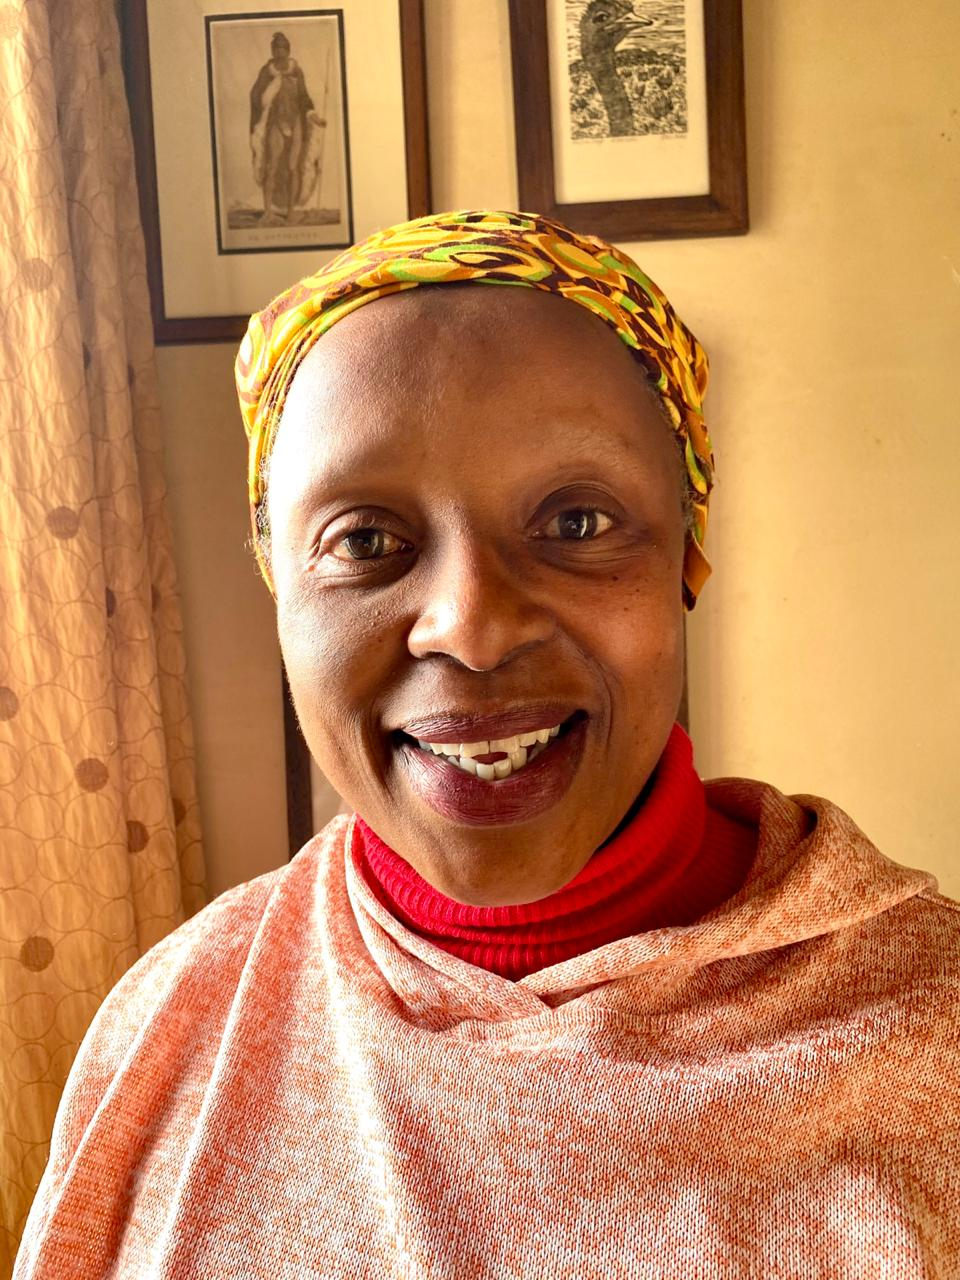 Family Constellations Work South Africa Lindiwe Mthembu-Salter